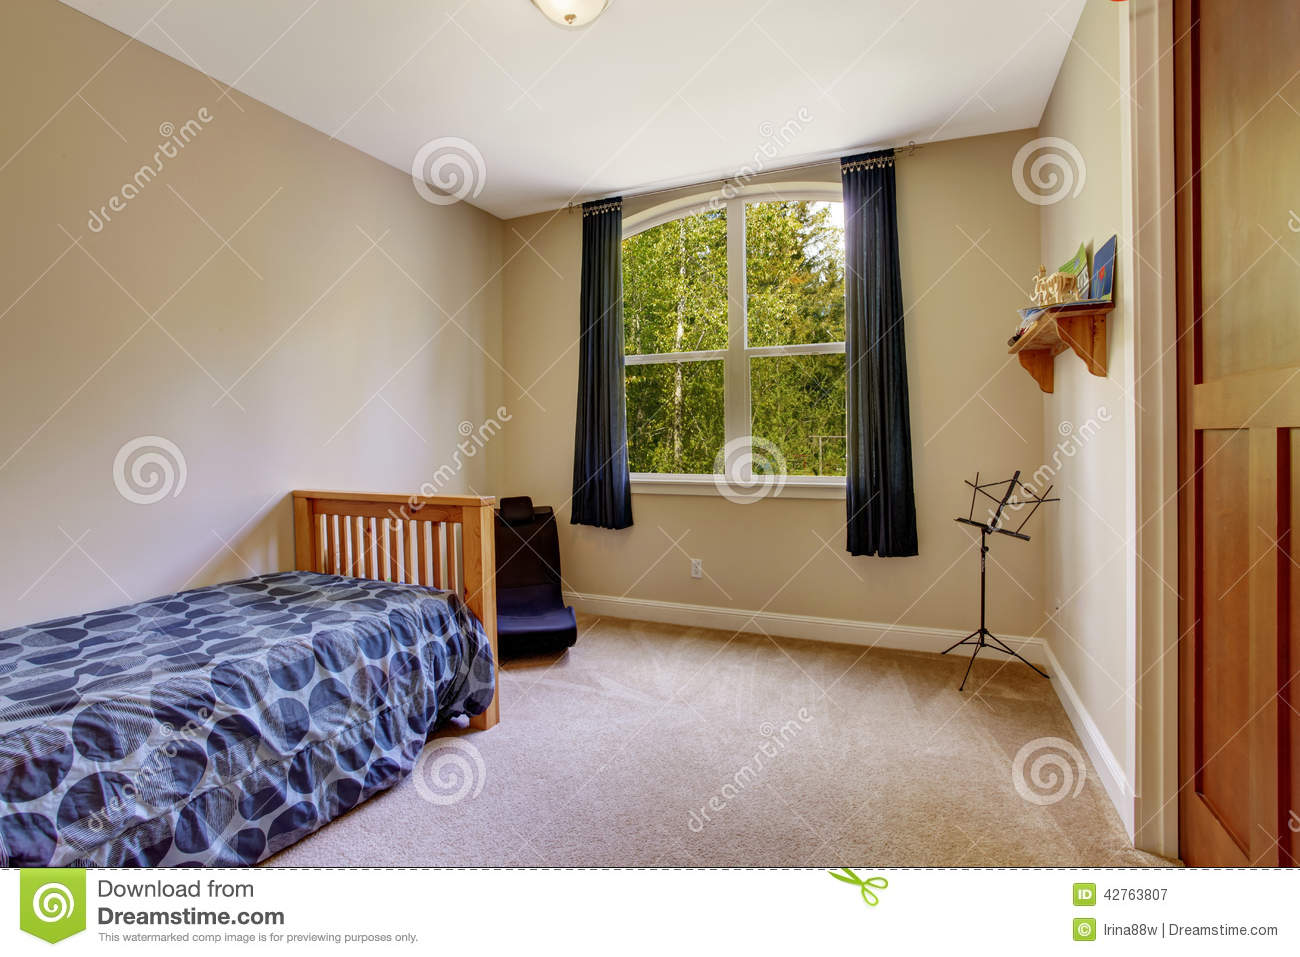 Small Bedroom With Single Bed Stock Image  Image of bedroom northwest 42763807